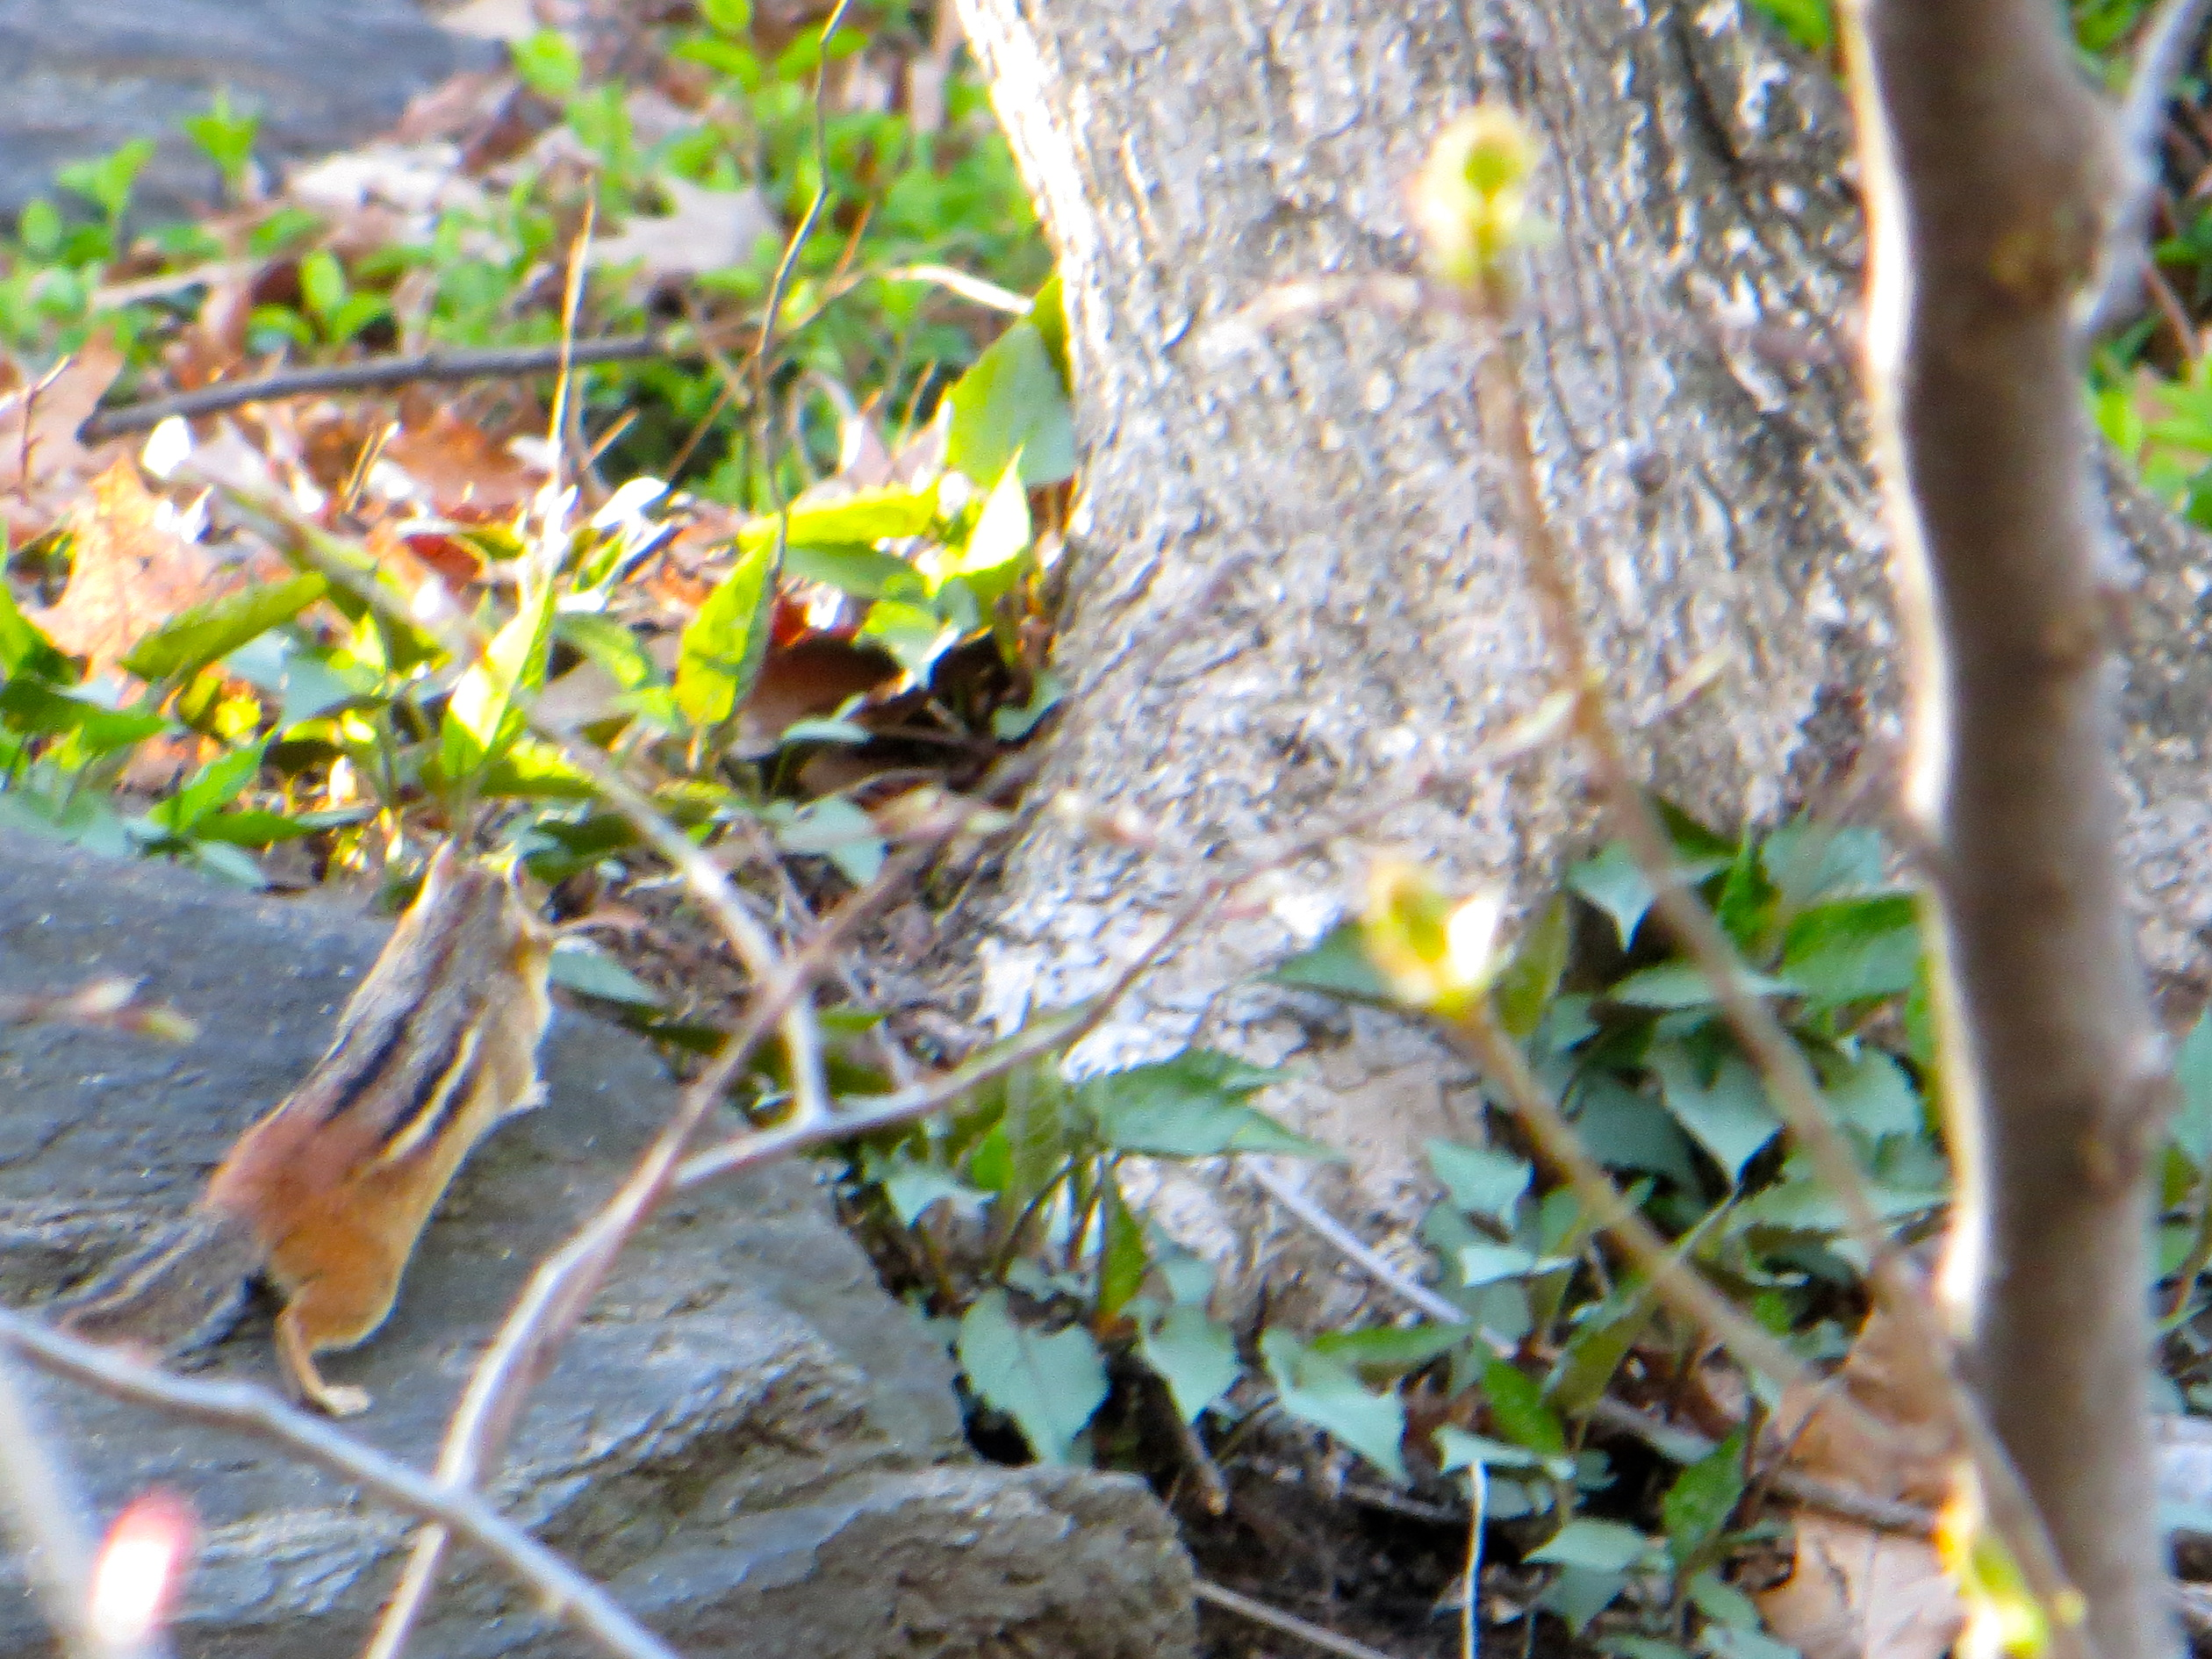 Eastern chipmunk, Central Park, NYC. Photo: Melissa Cooper